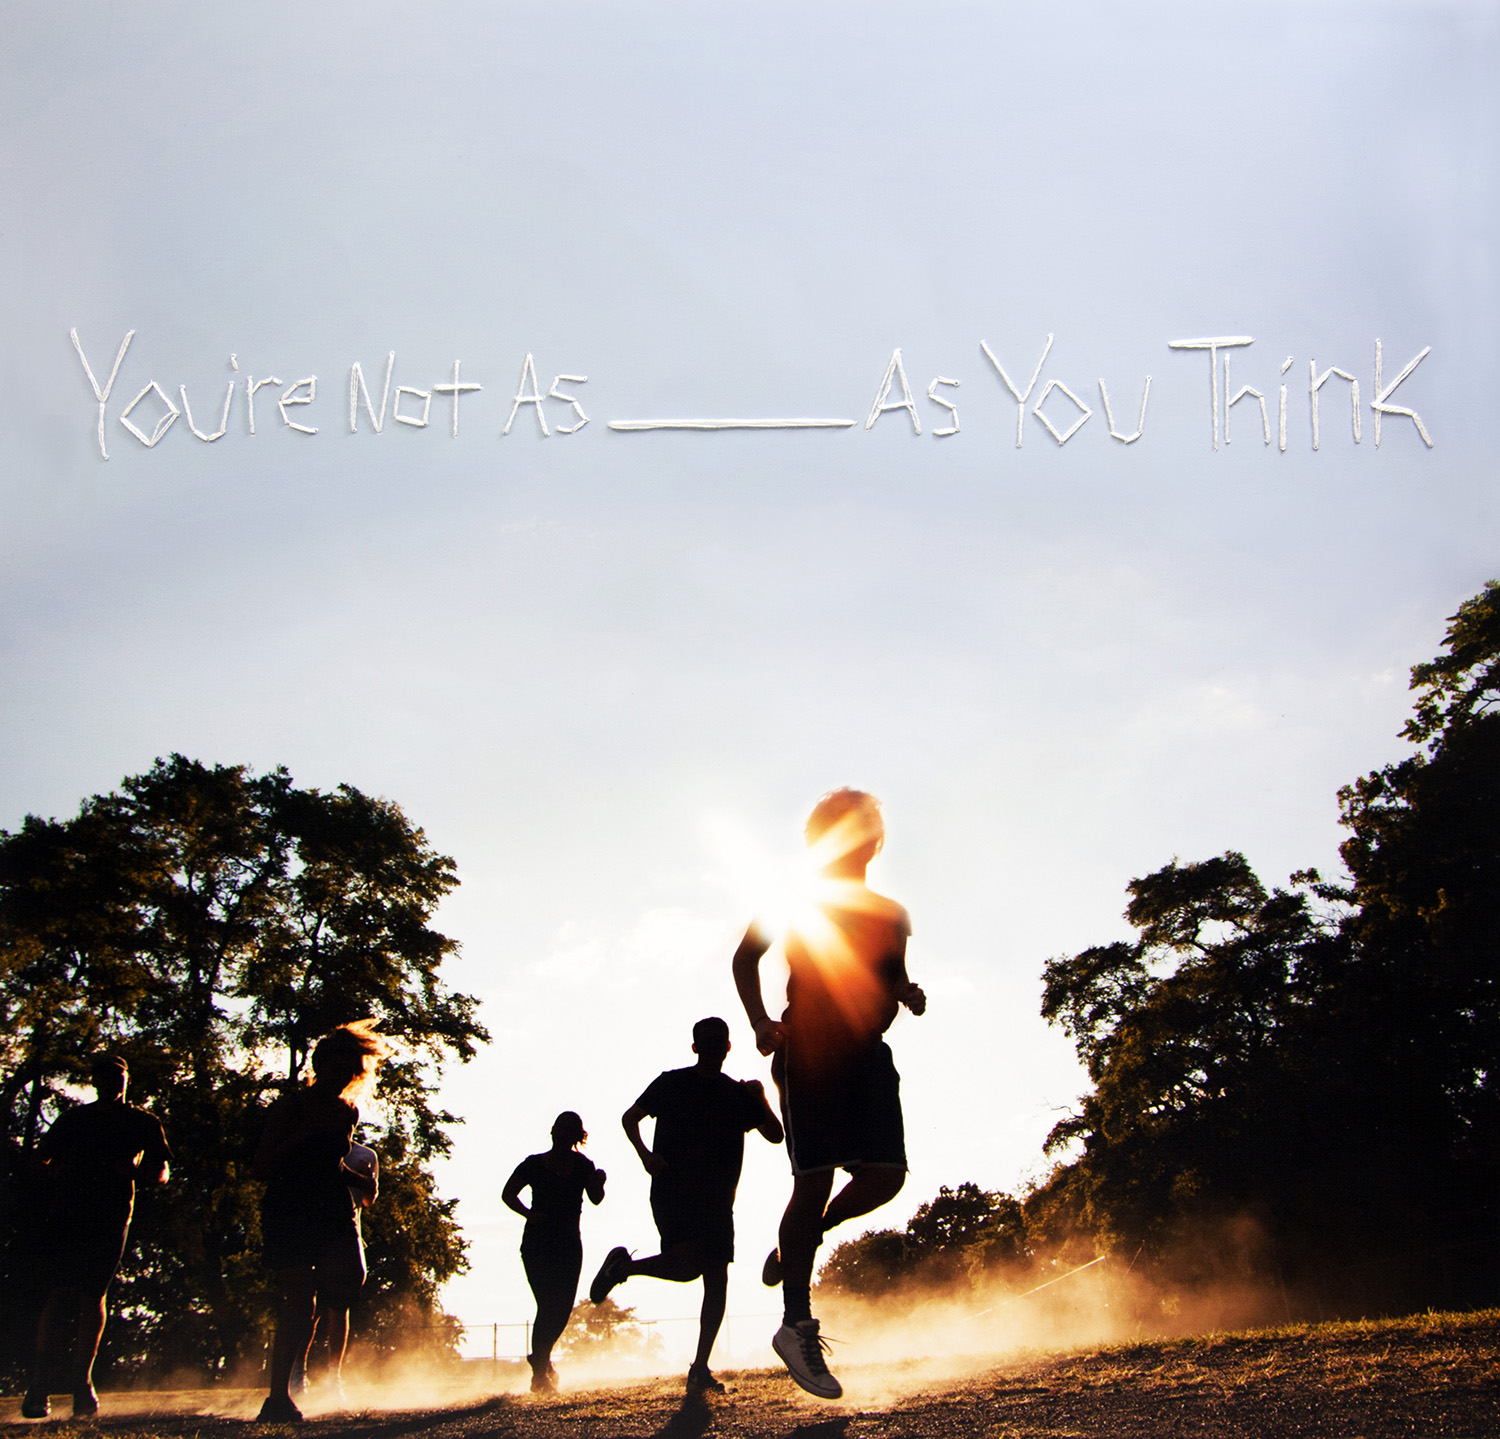 Sorority Noise – You're Not As _____ As You Think